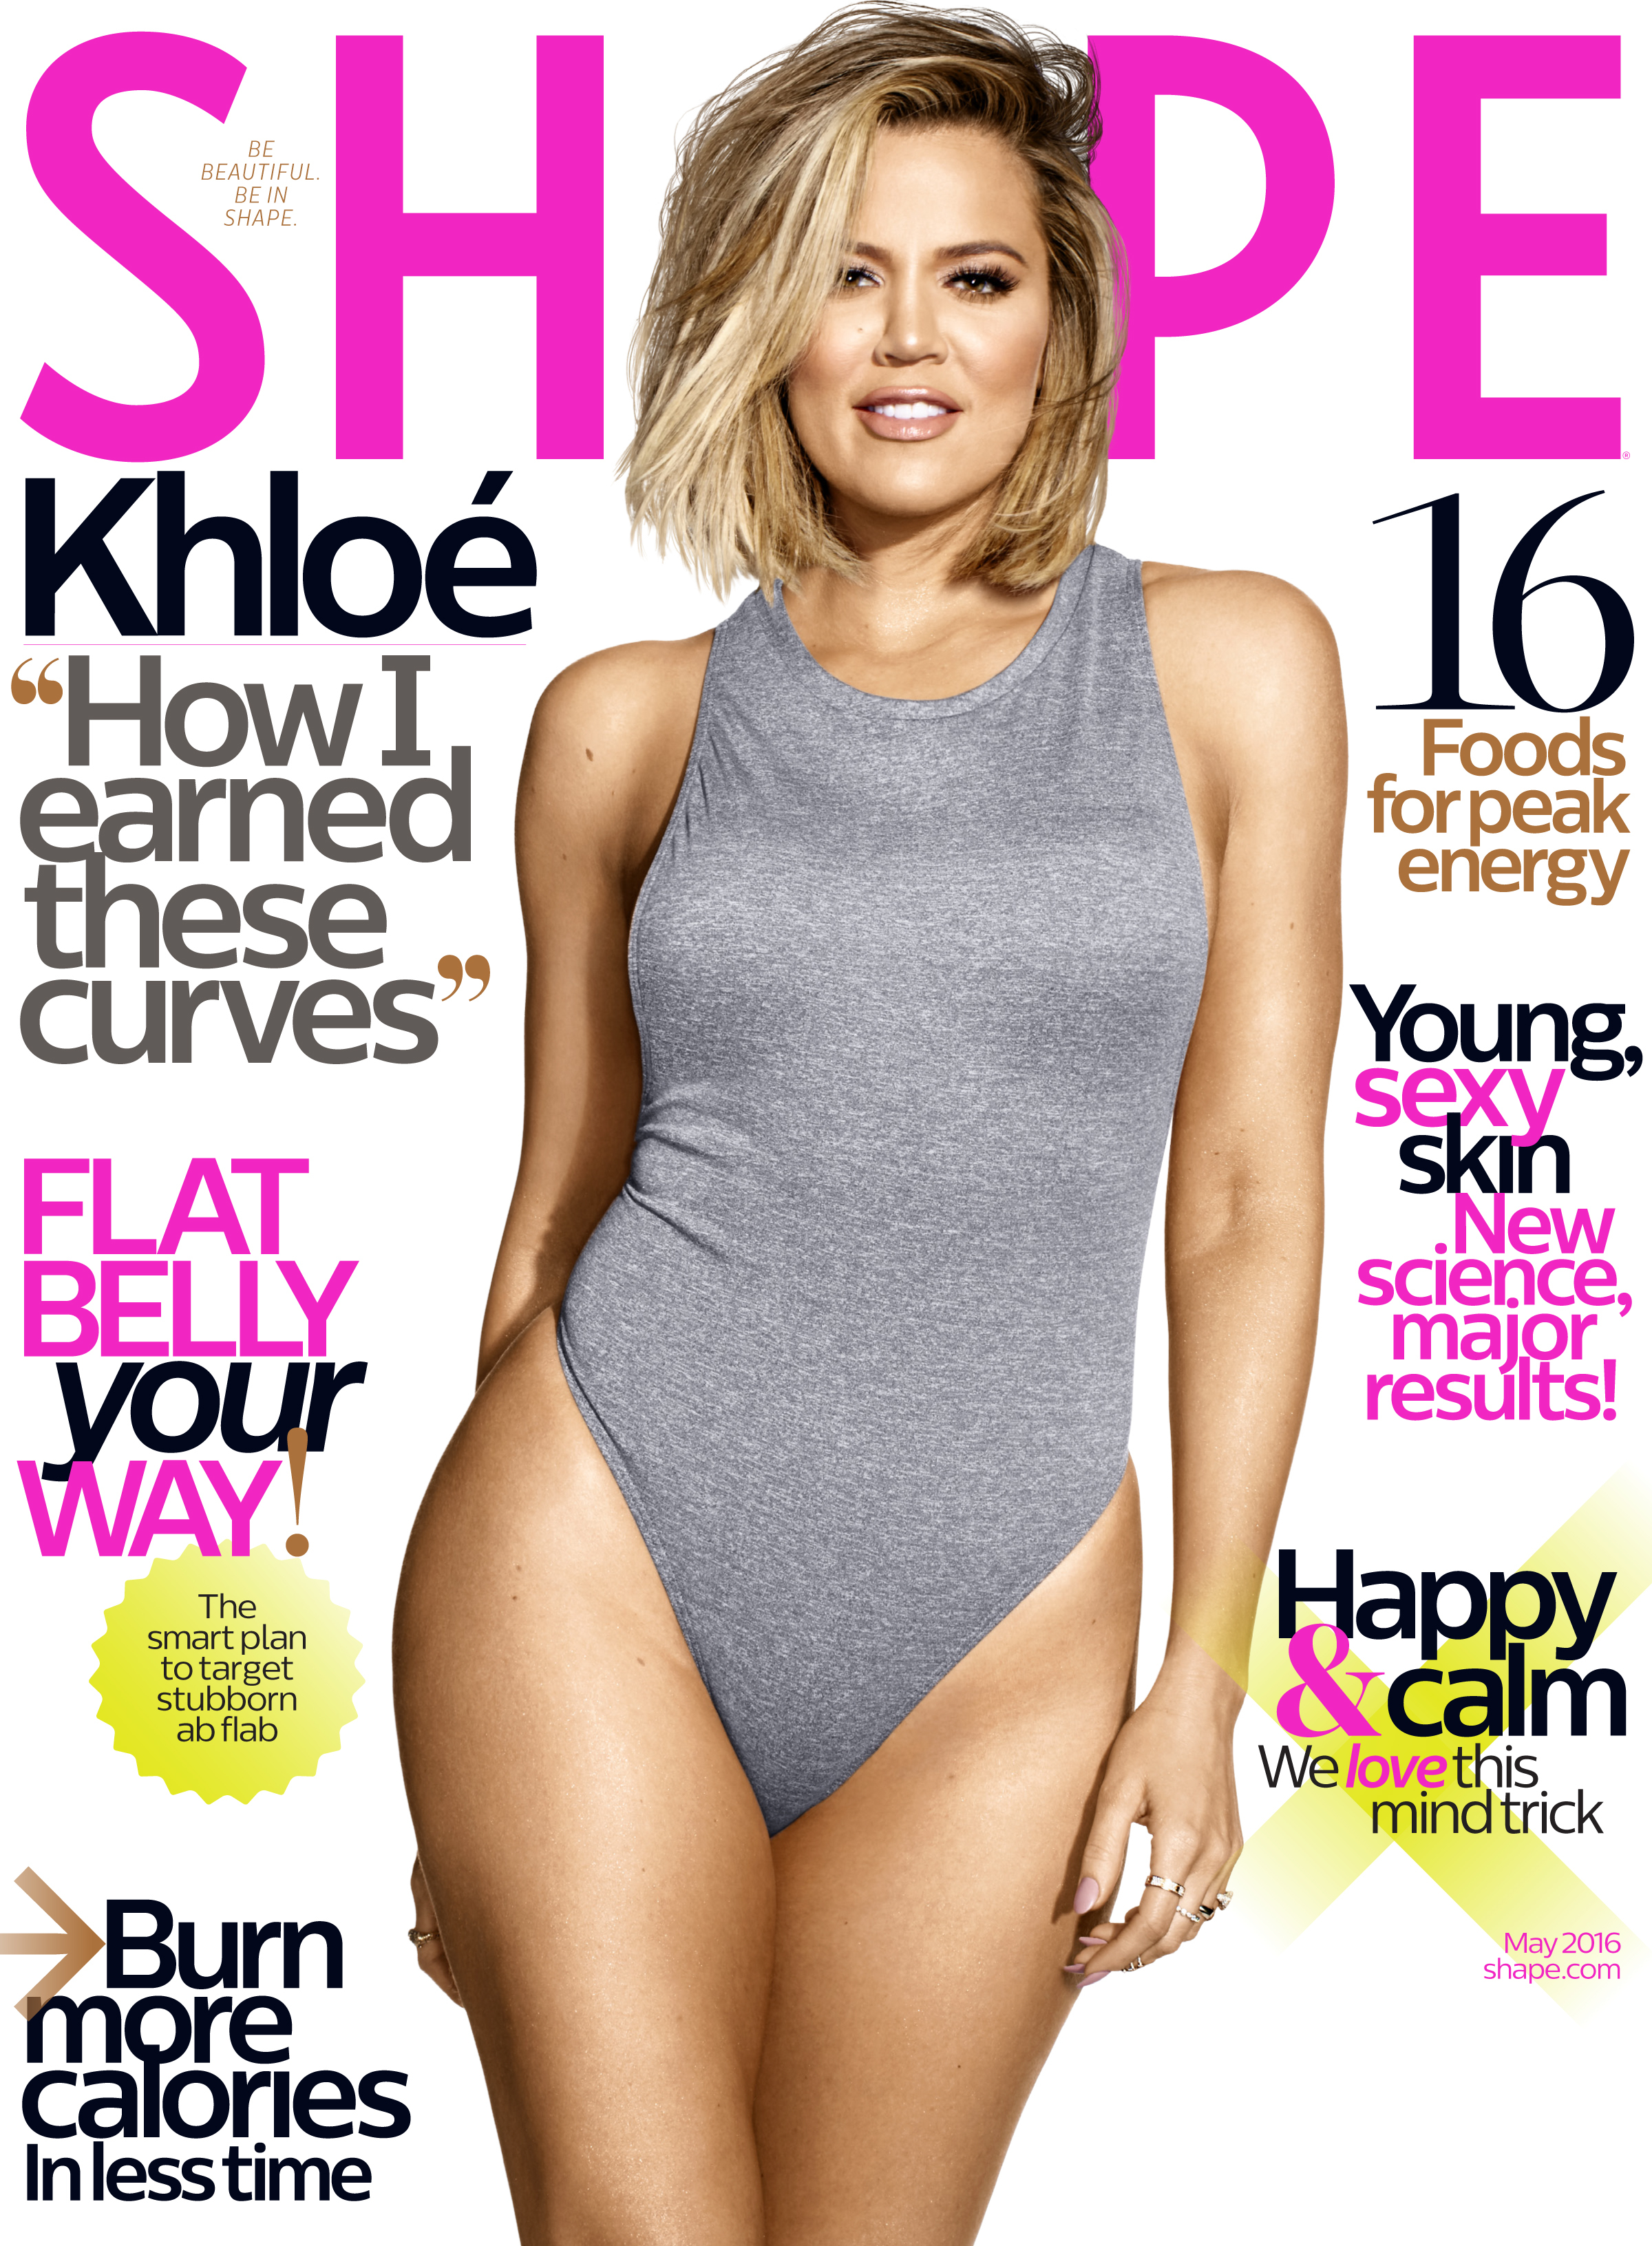 Khloe Kardashian on why she likes to look cute while she works out: